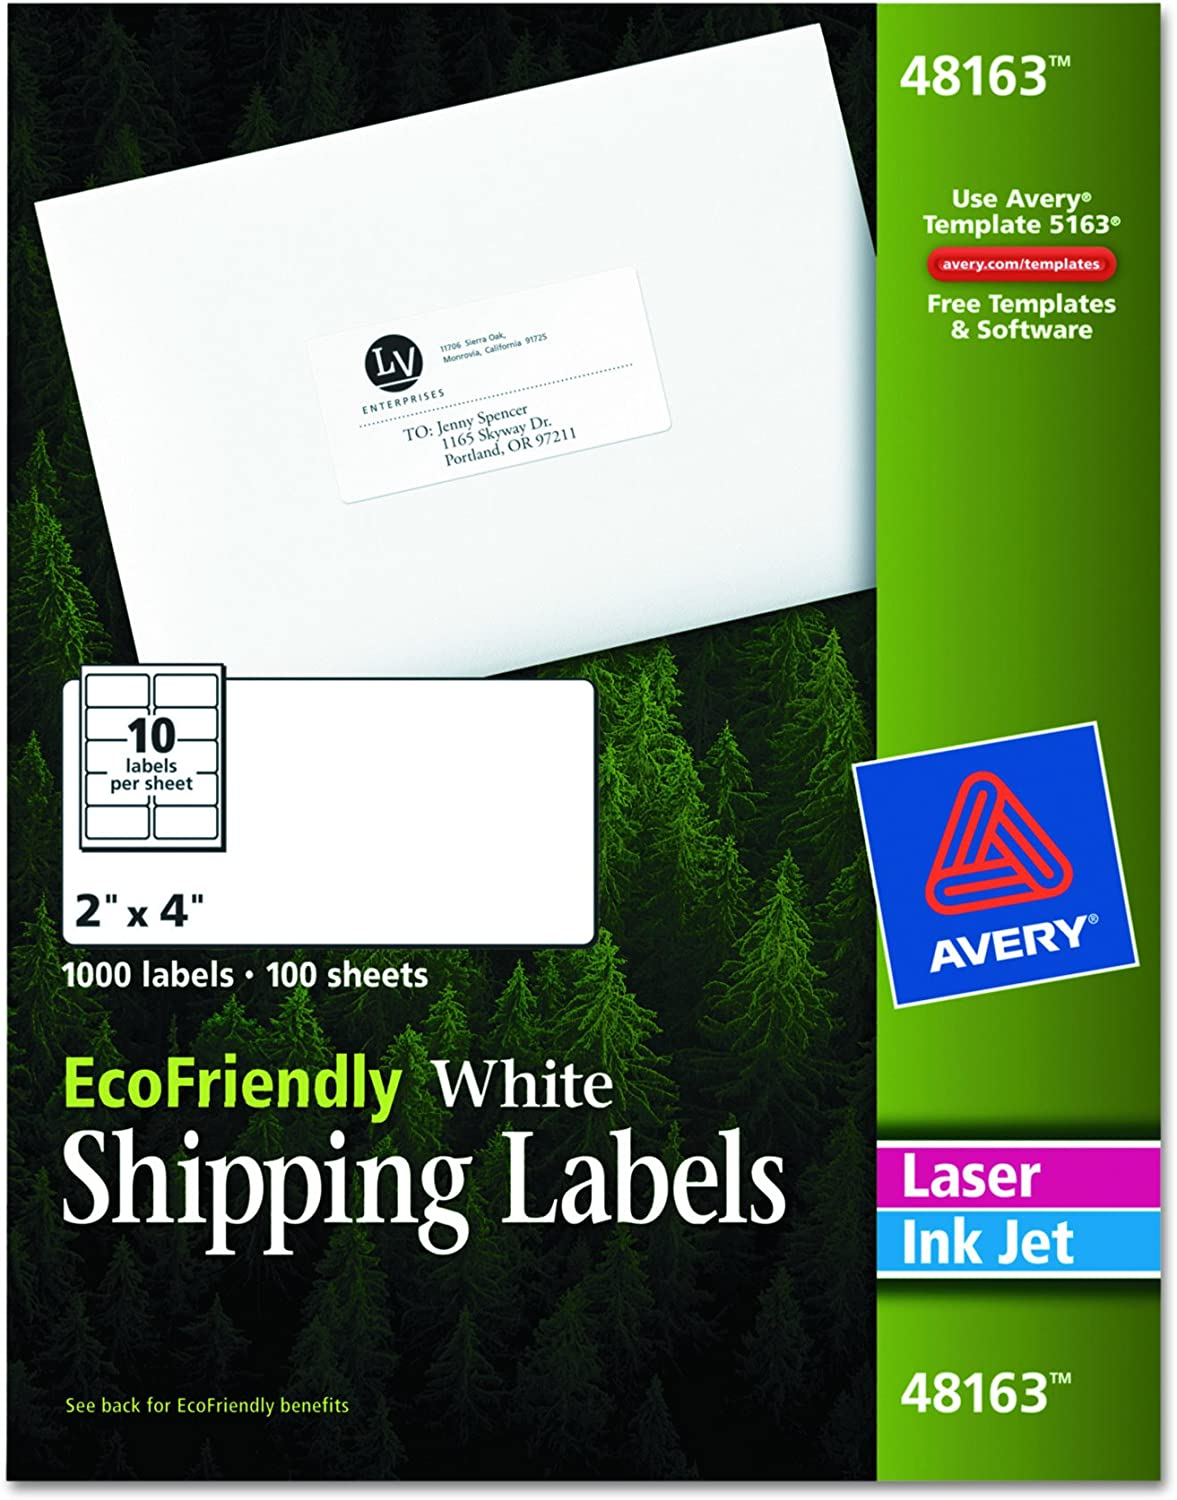 AVERY White EcoFriendly Shipping Labels, 2 x 4 Inches, Box of 1000 (48163): Office Products